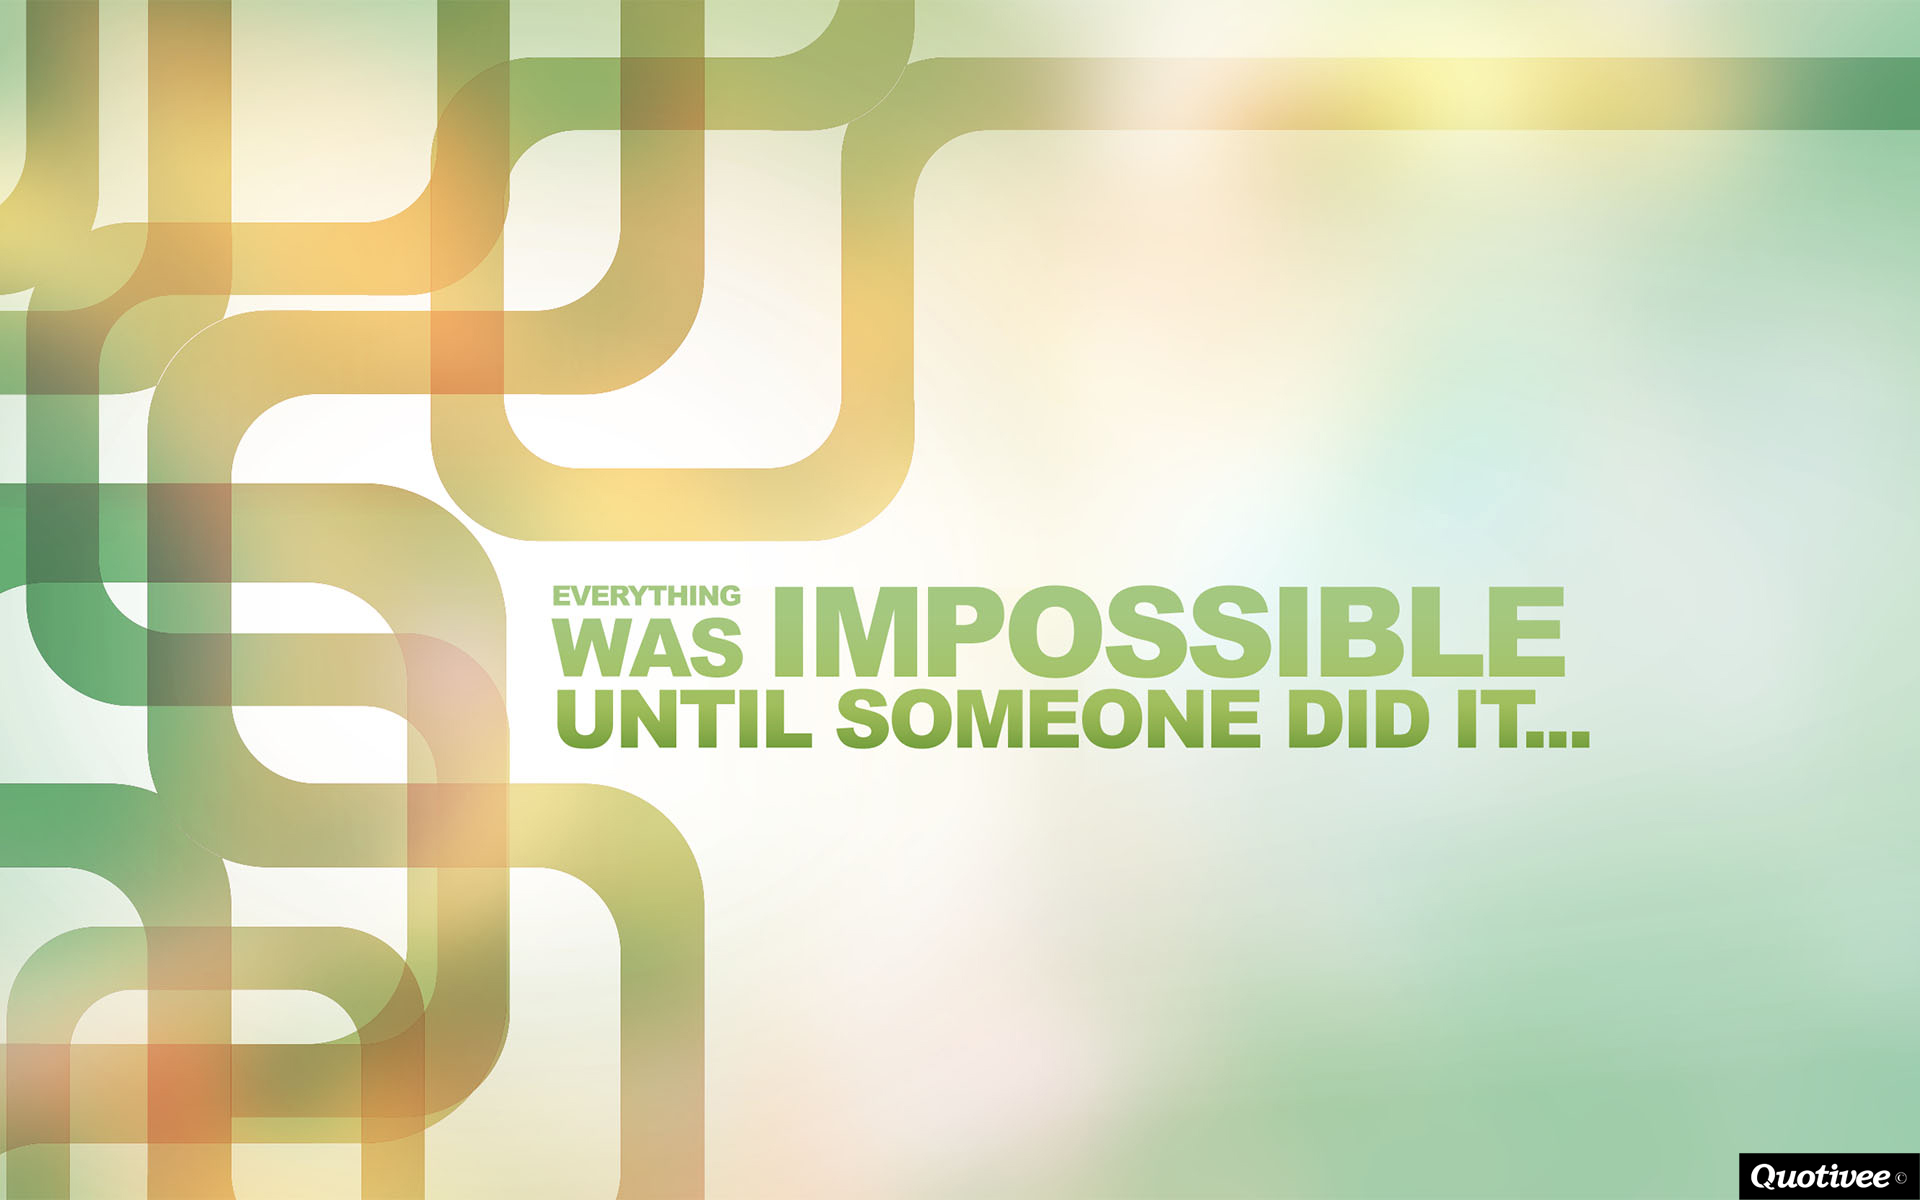 Motivational Quotes Wallpaper For Mobile Everything Was Impossible Until Someone Did It